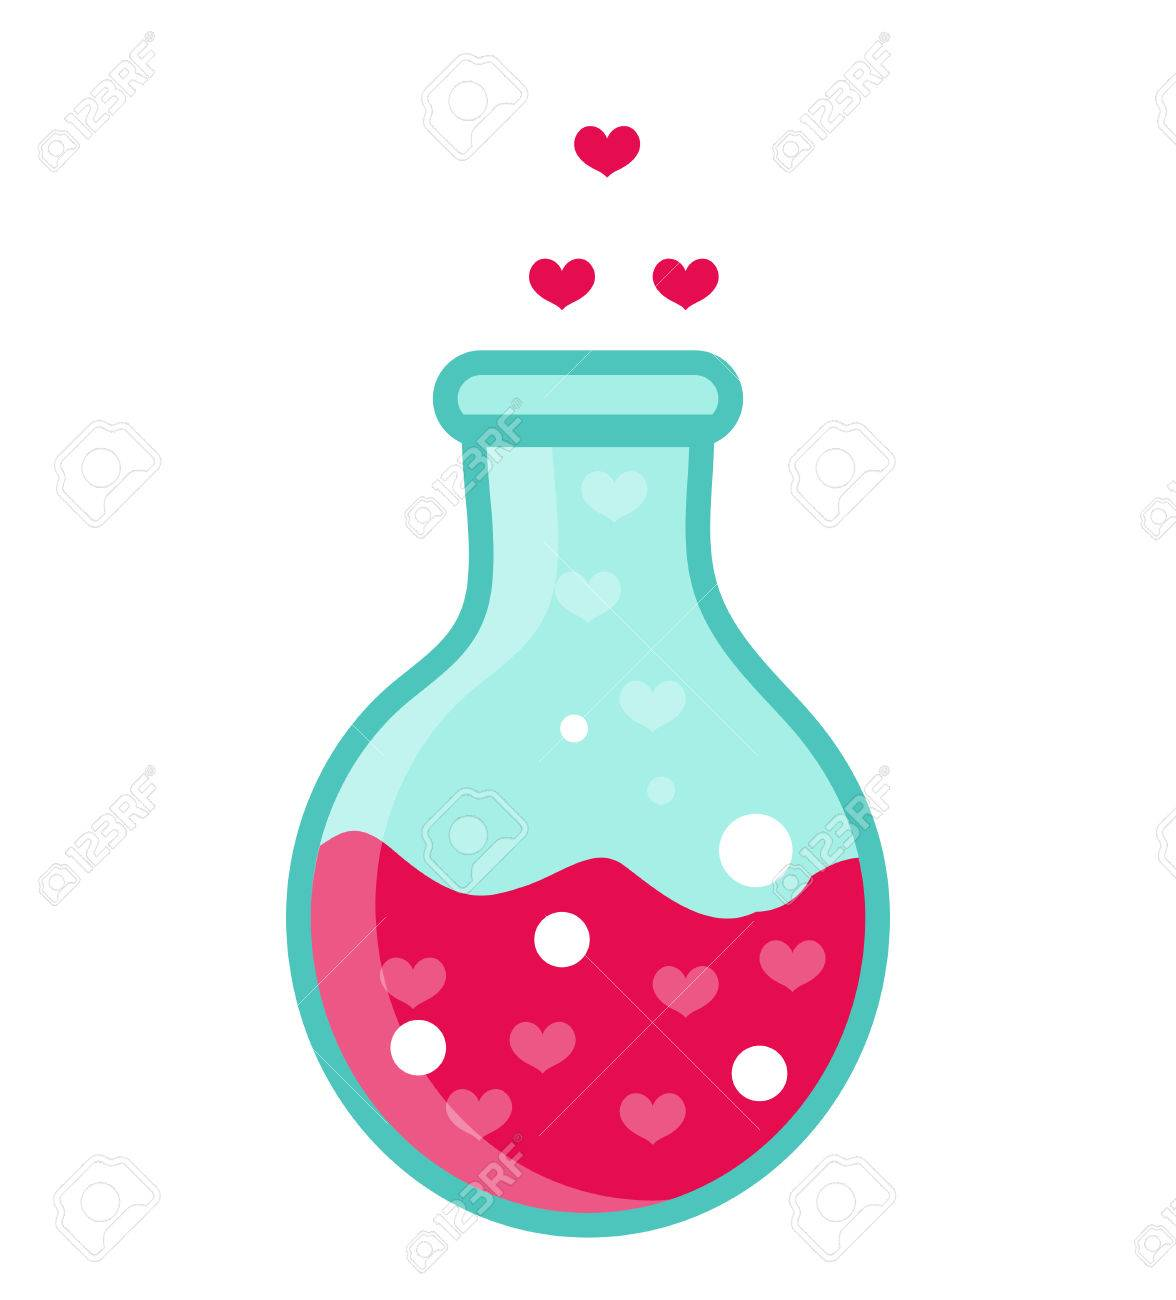 love potion icon flat design isolated on white background rh 123rf com clip art with no white background how to find clip art without white background